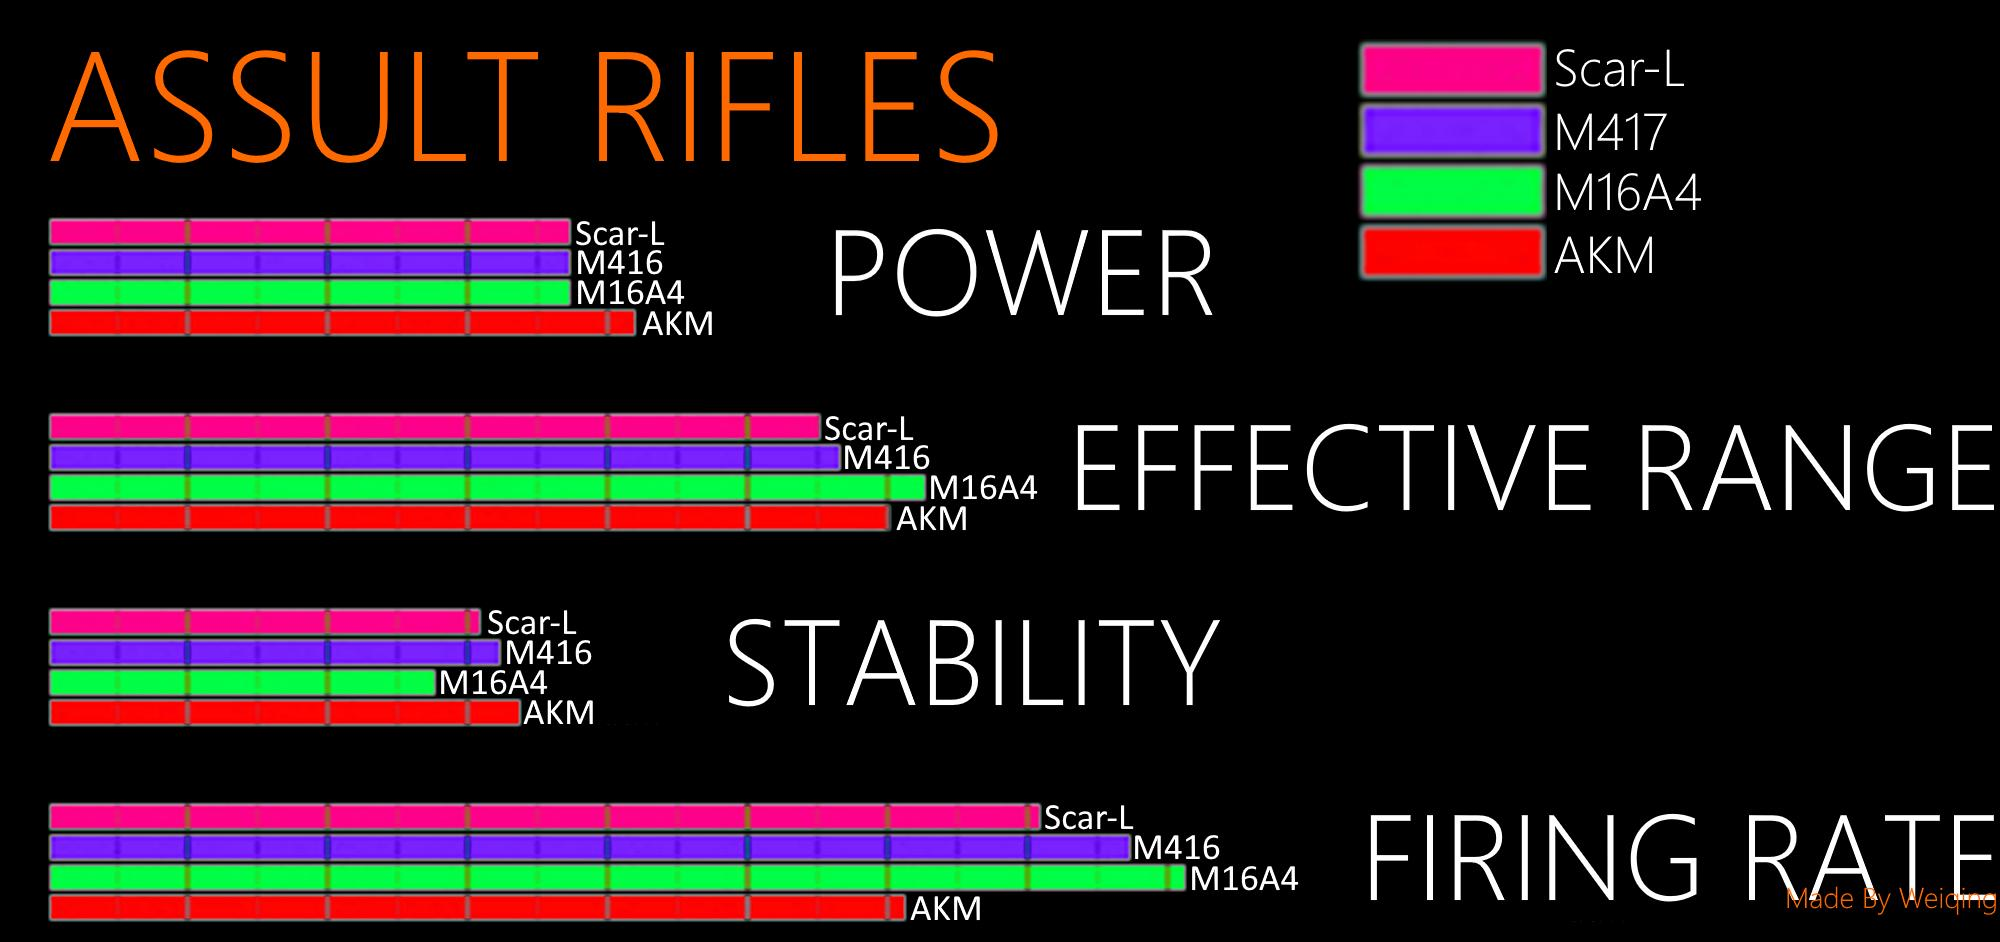 PUBG - Best Places to AimWeapon Information in Bar Charts